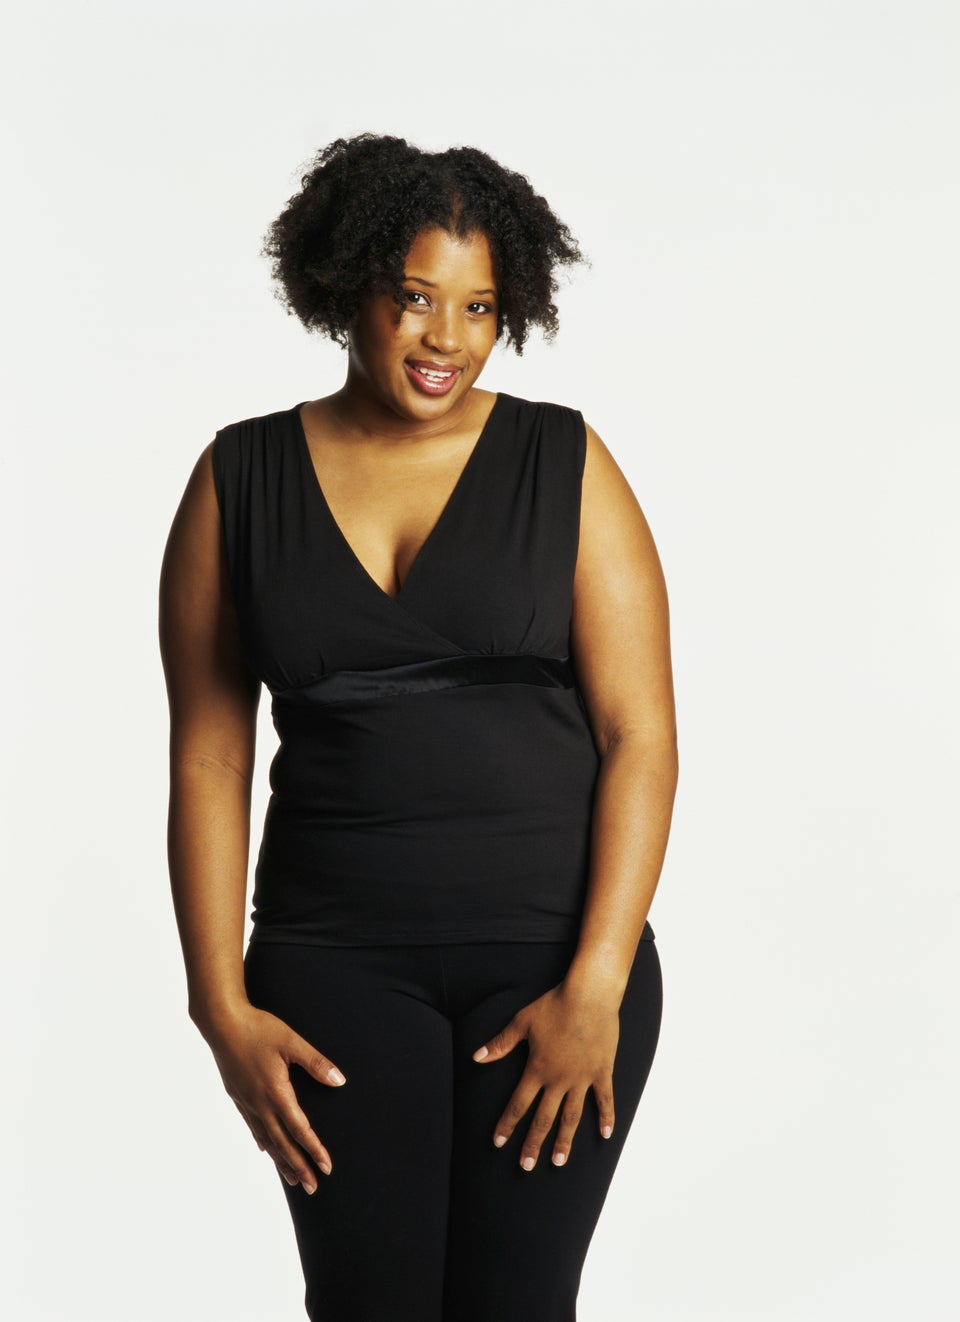 Plus Size Model in the City: Communication